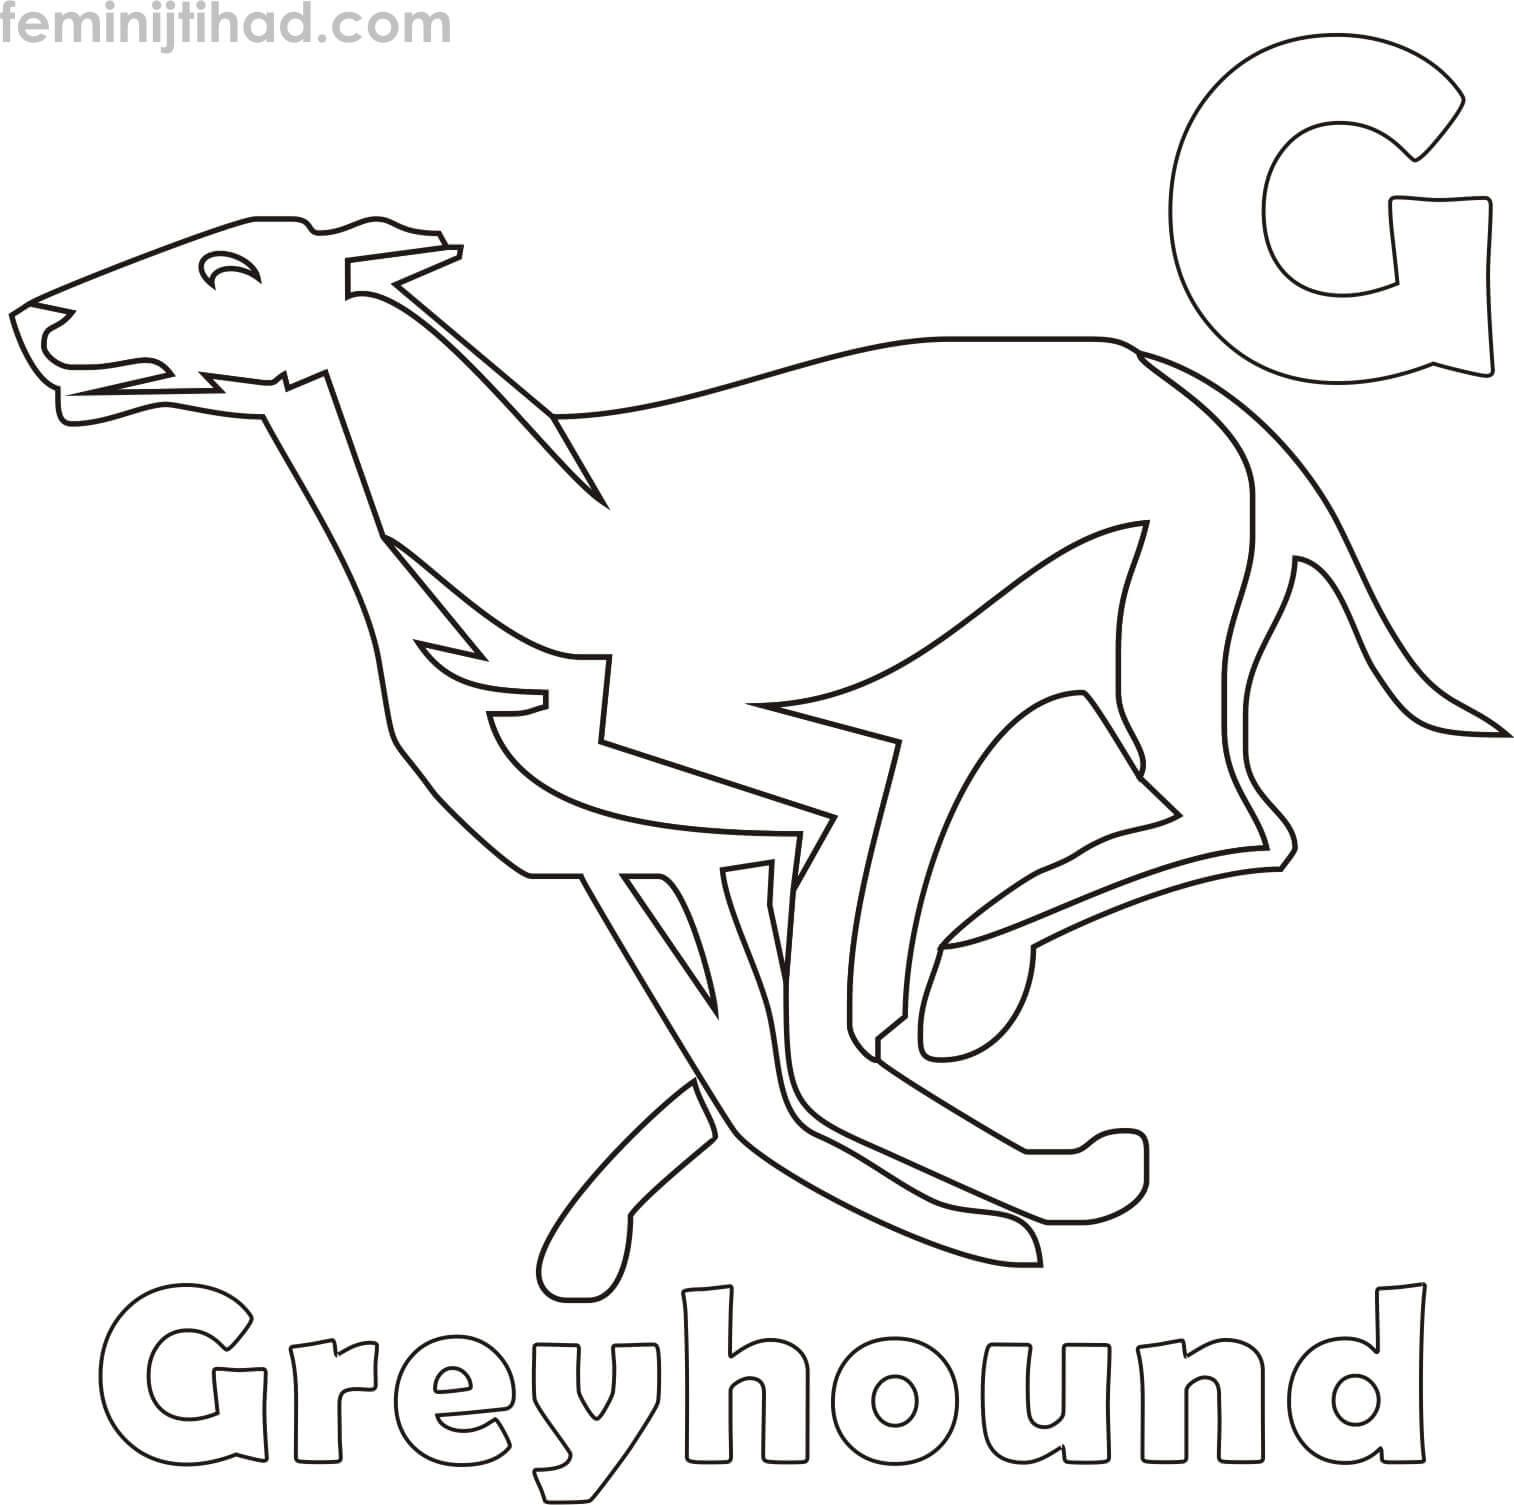 Greyhound Coloring Pages For Kids Coloring Pages For Kids